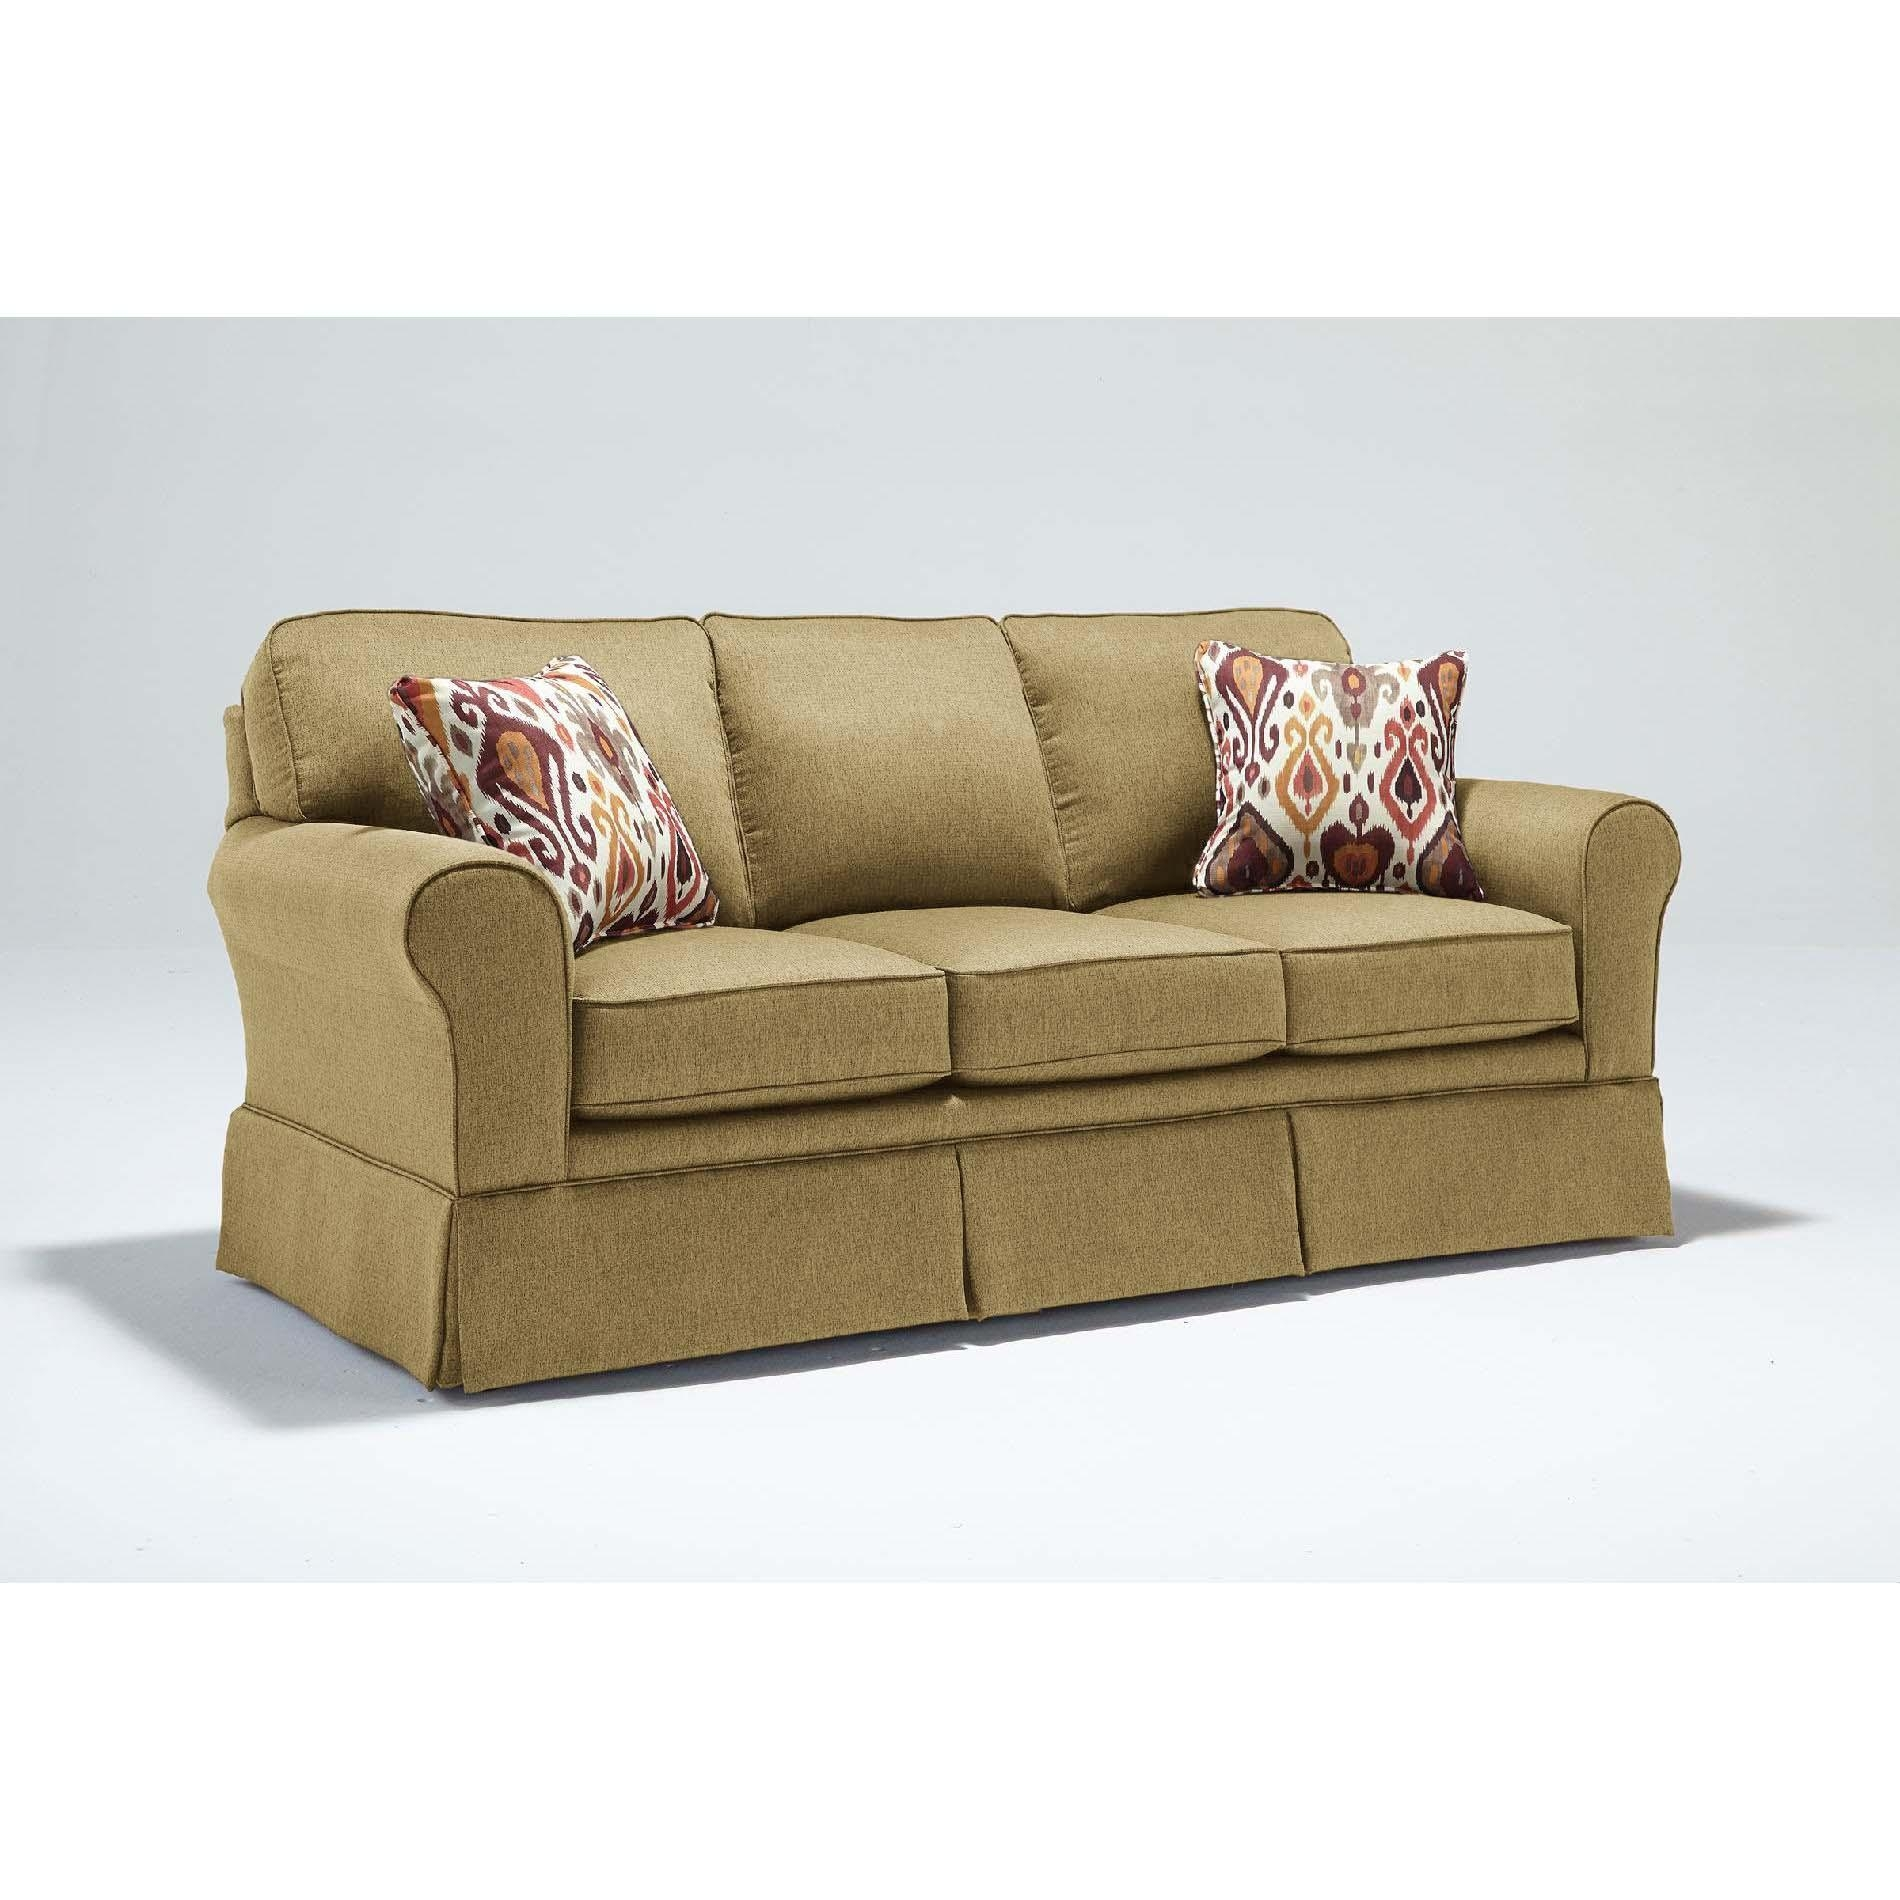 Furniture: Sears Canada Couches | Sears Couch | Sectional Sofa Regarding Sears Sofa (View 11 of 20)